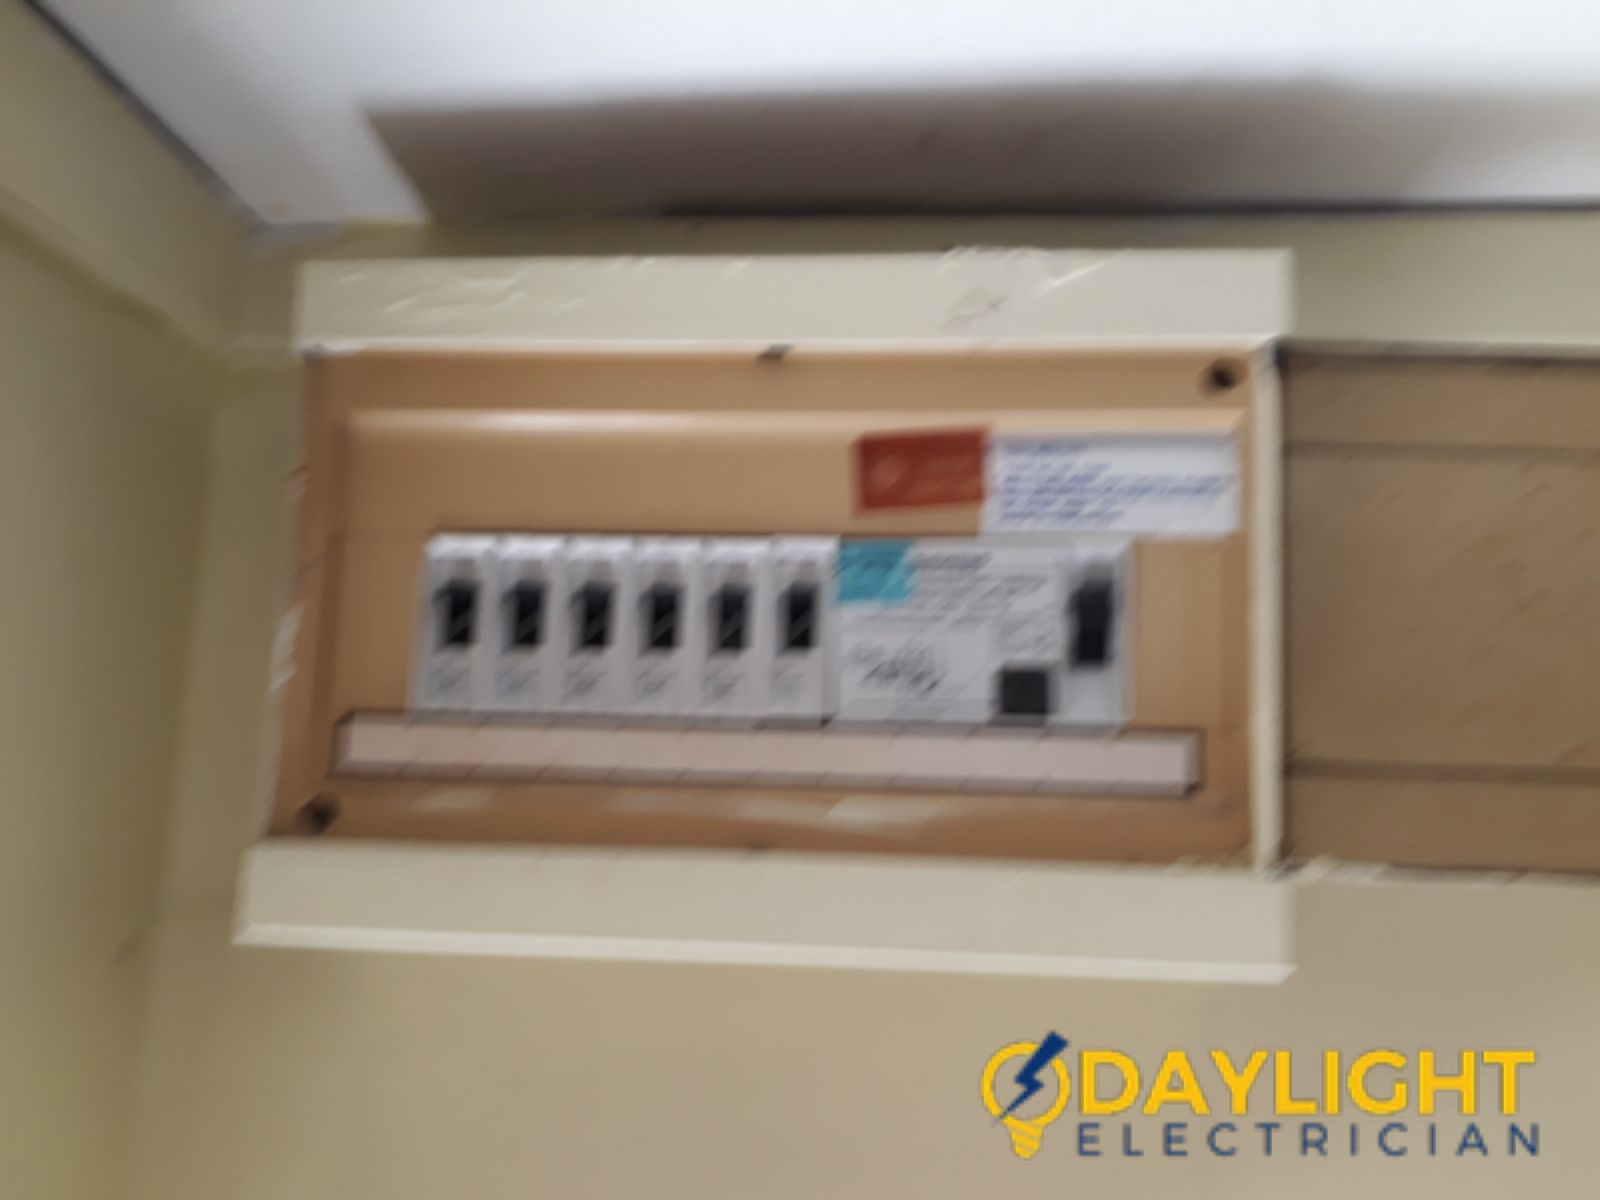 Db Box Distribution Board Replacement Electrician Singapore Hdb Buona Vista Electrician